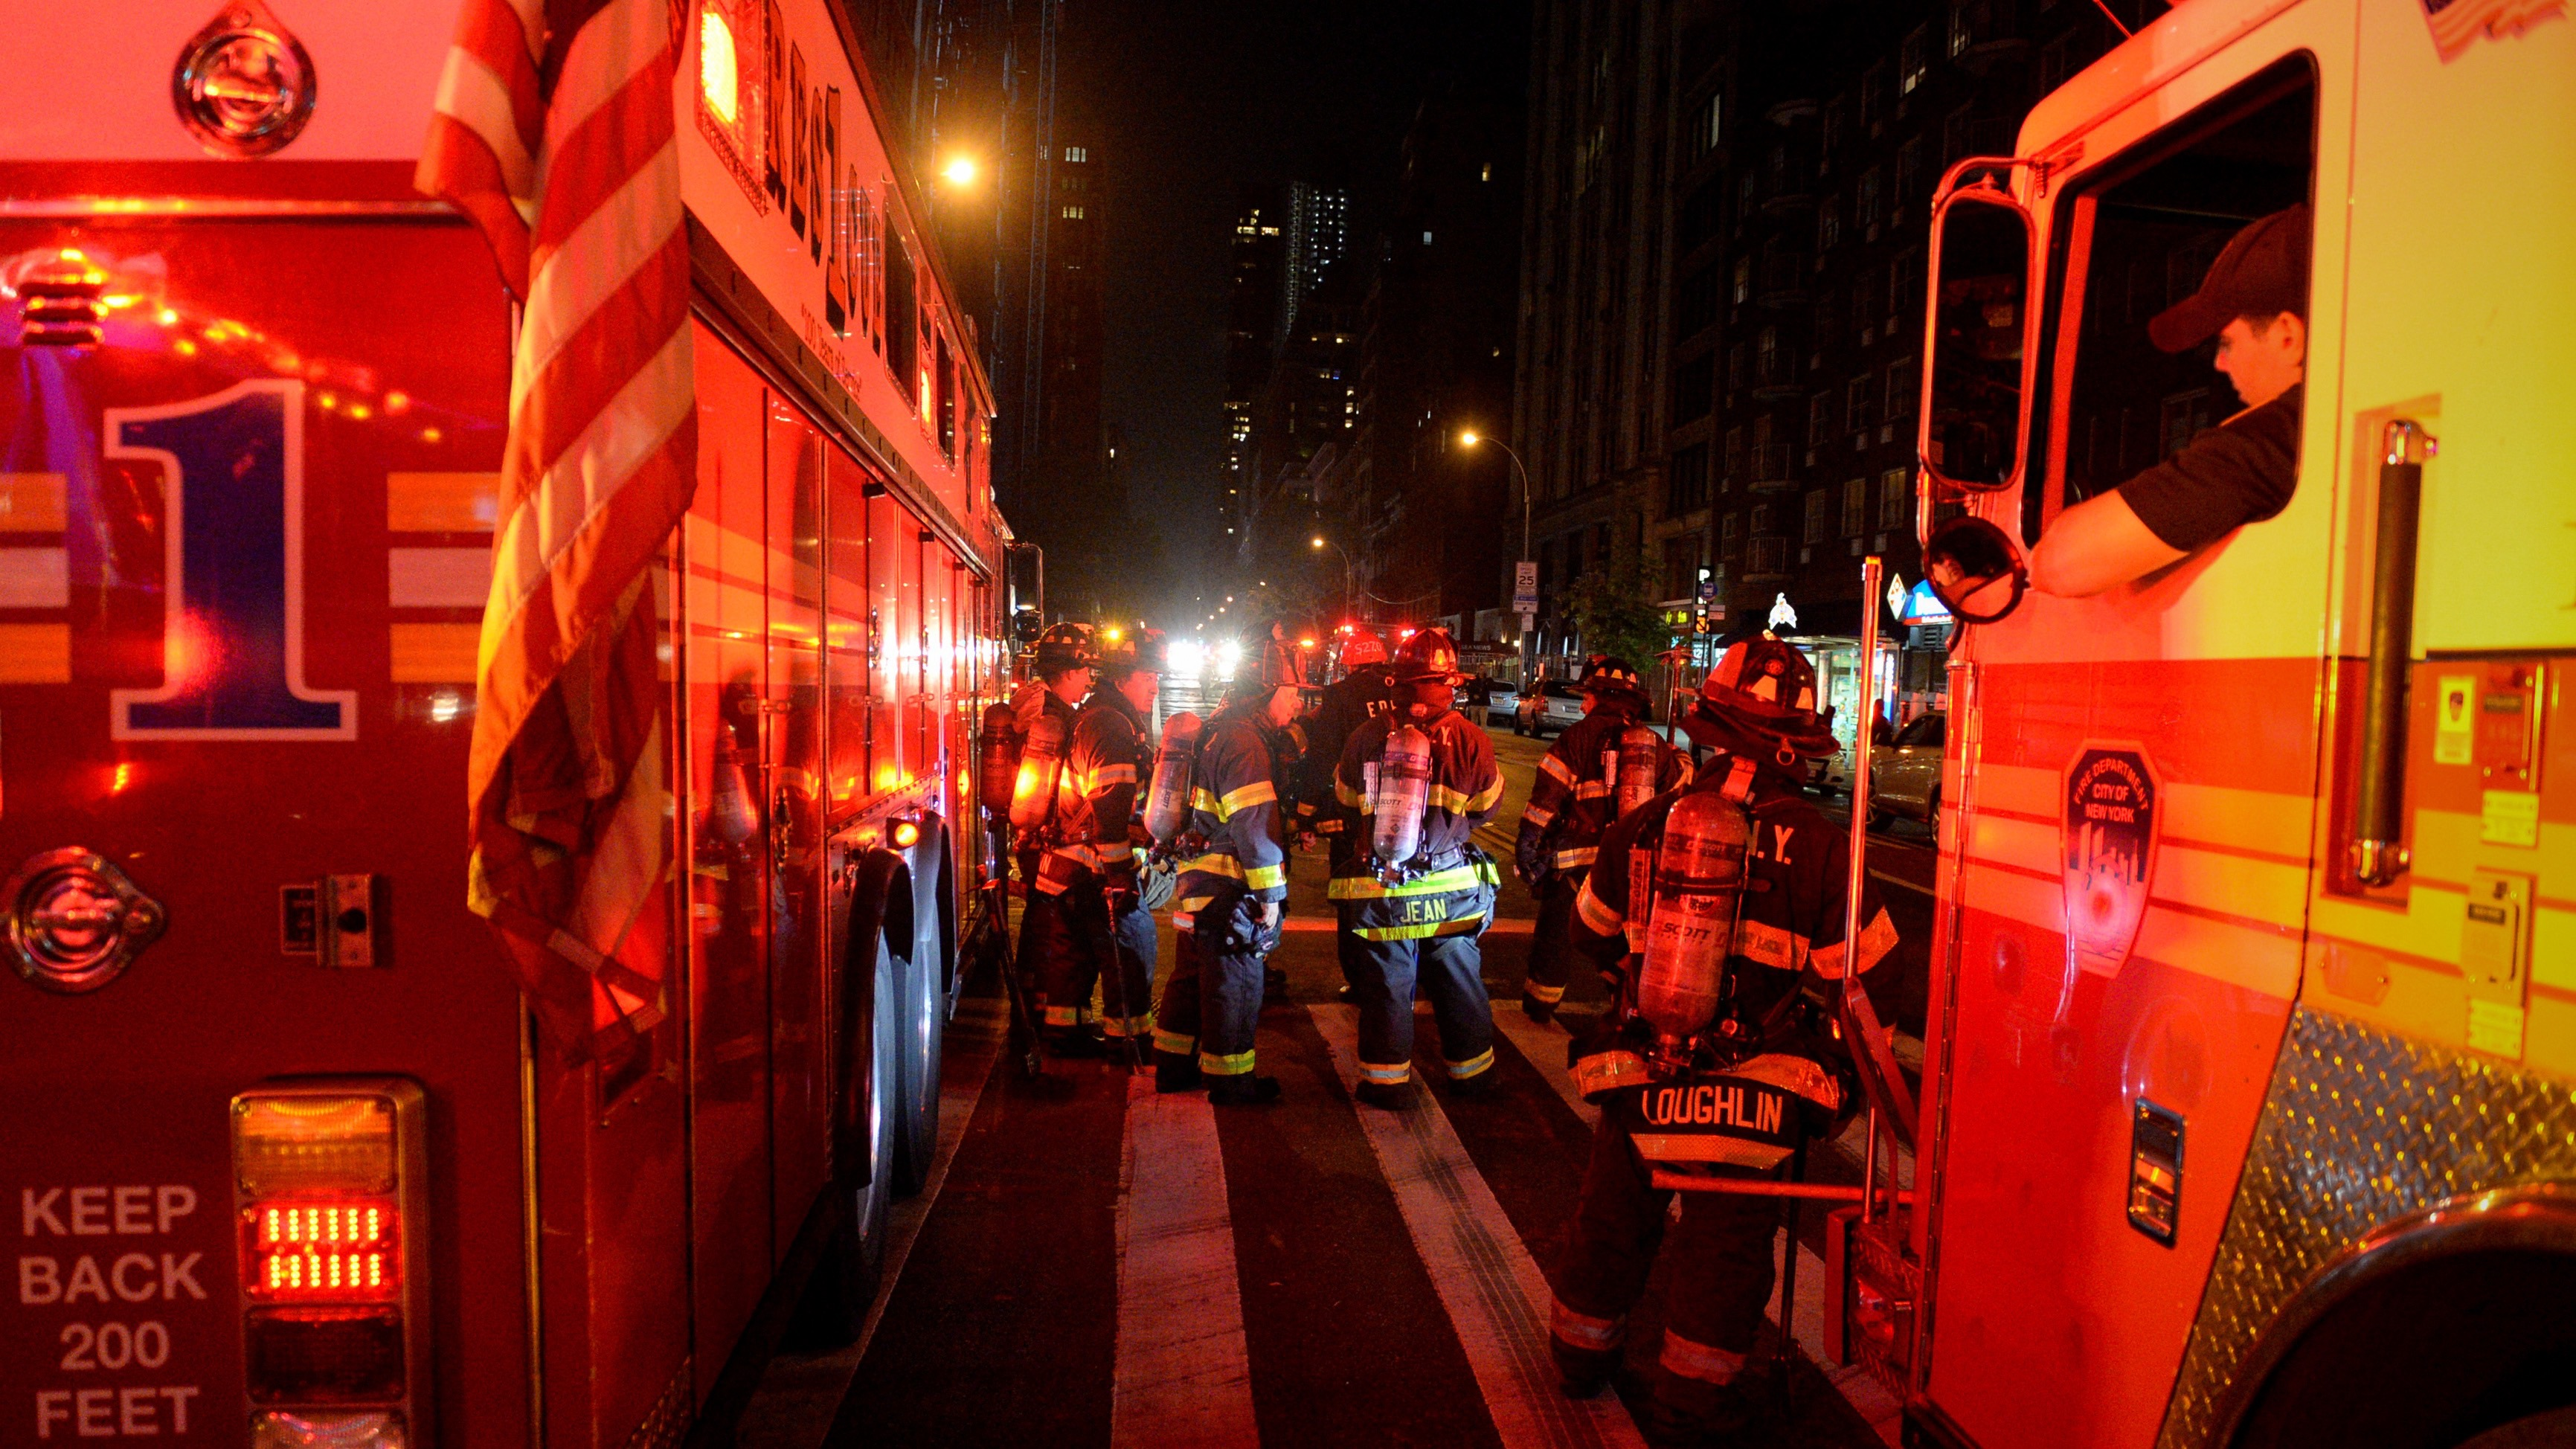 New York City firefighters stand near the site of an explosion in the Chelsea neighborhood of Manhattan, New York, U.S.  September 17, 2016.  REUTERS/Rashid Umar Abbasi     TPX IMAGES OF THE DAY      - RTSO7V9